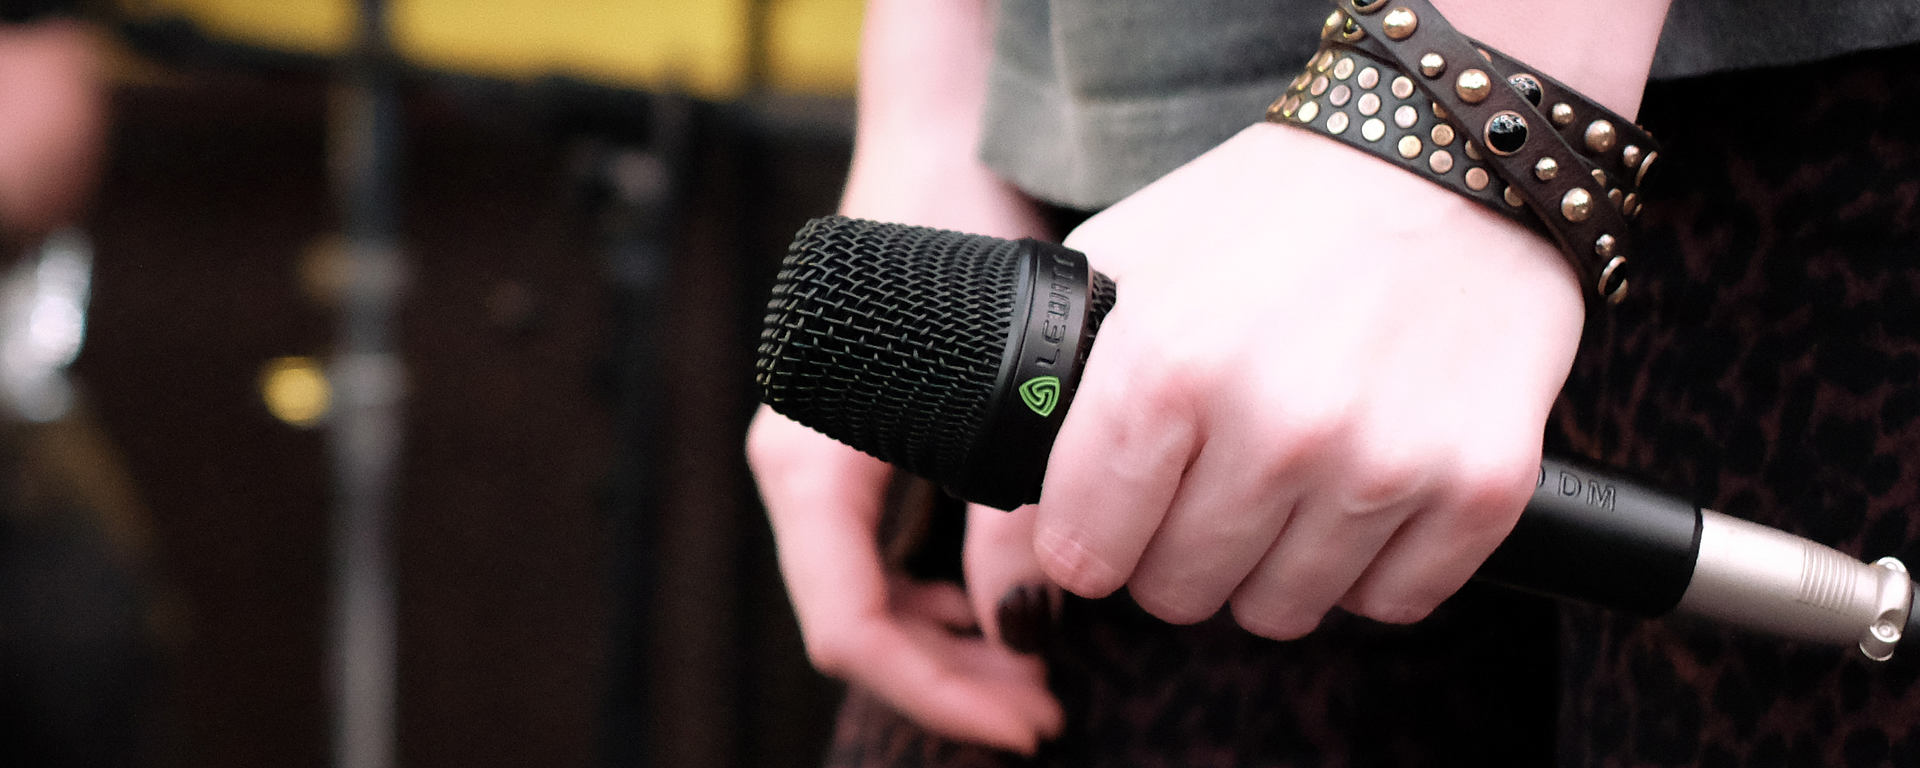 A woman's hand holding an MTP 250 microphone during a performance